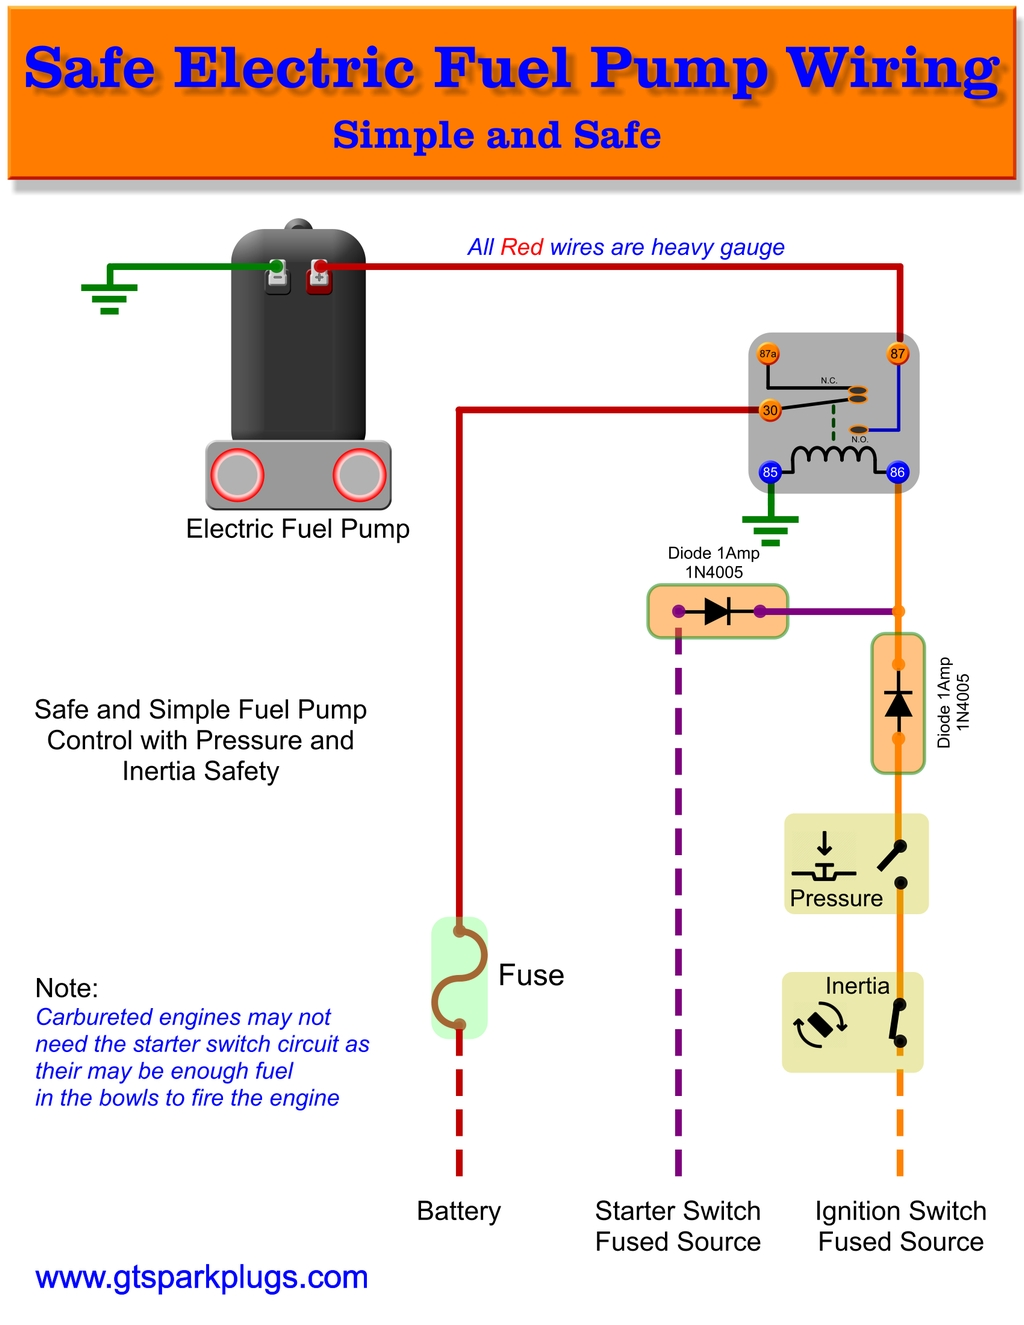 electric fuel pump wiring diagram gtsparkplugs rh gtsparkplugs com wire a fuel pump relay wiring a fuel pump switch